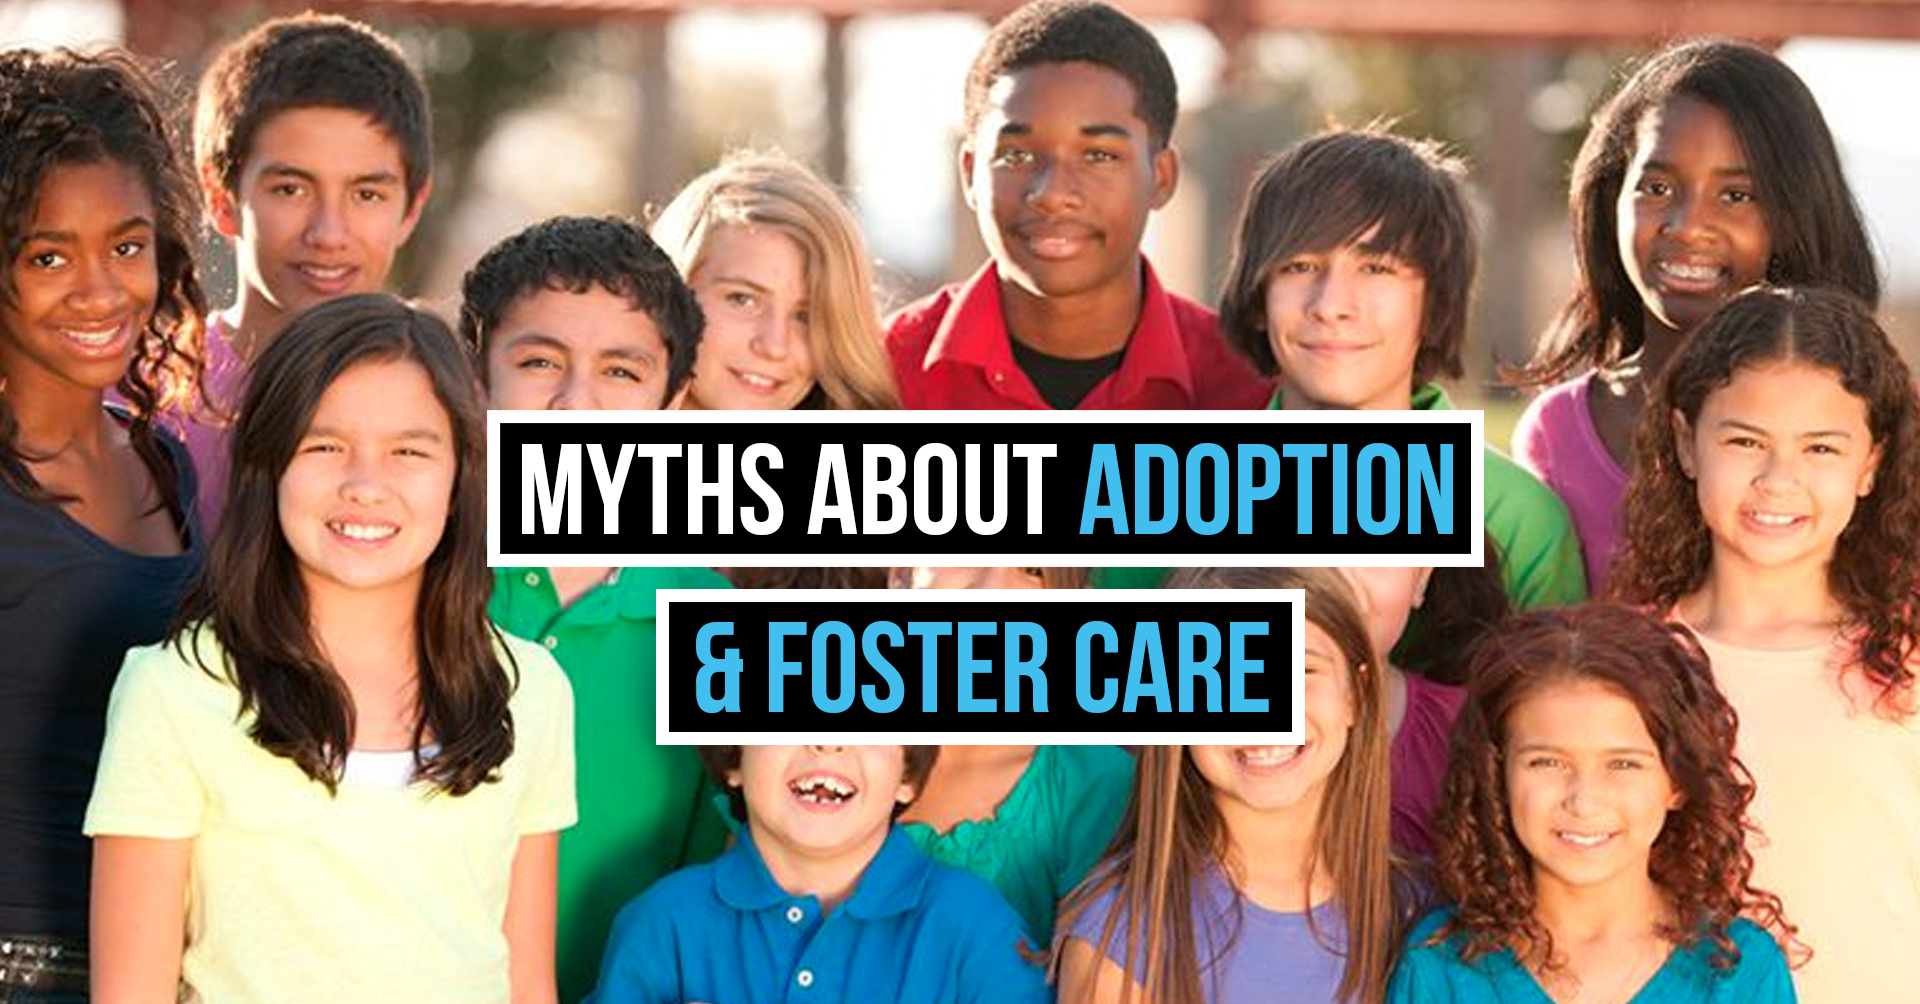 Why our Independent Foster Care Agency is 5 star rated